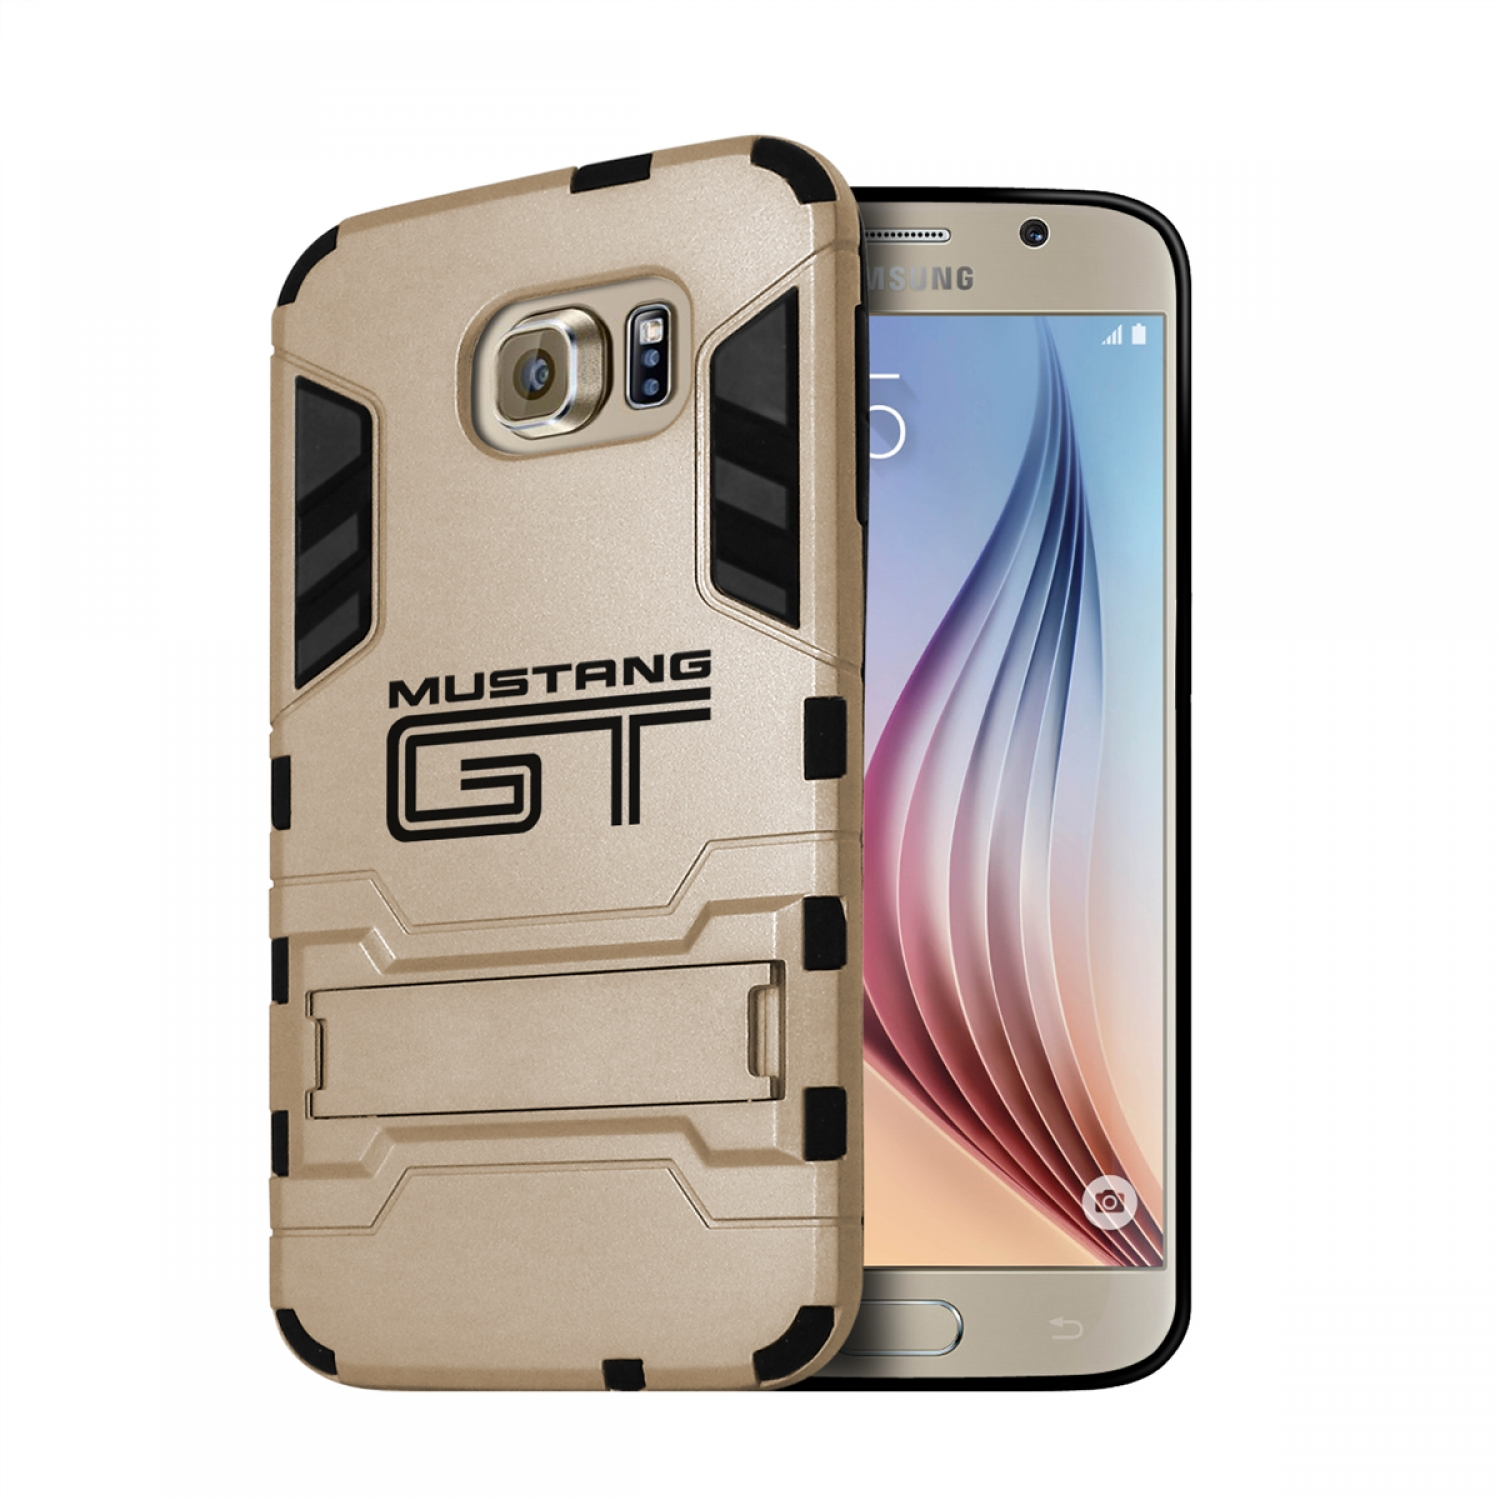 Ford Mustang GT Samsung Galaxy S6 Shockproof TPU ABS Hybrid Golden Phone Case